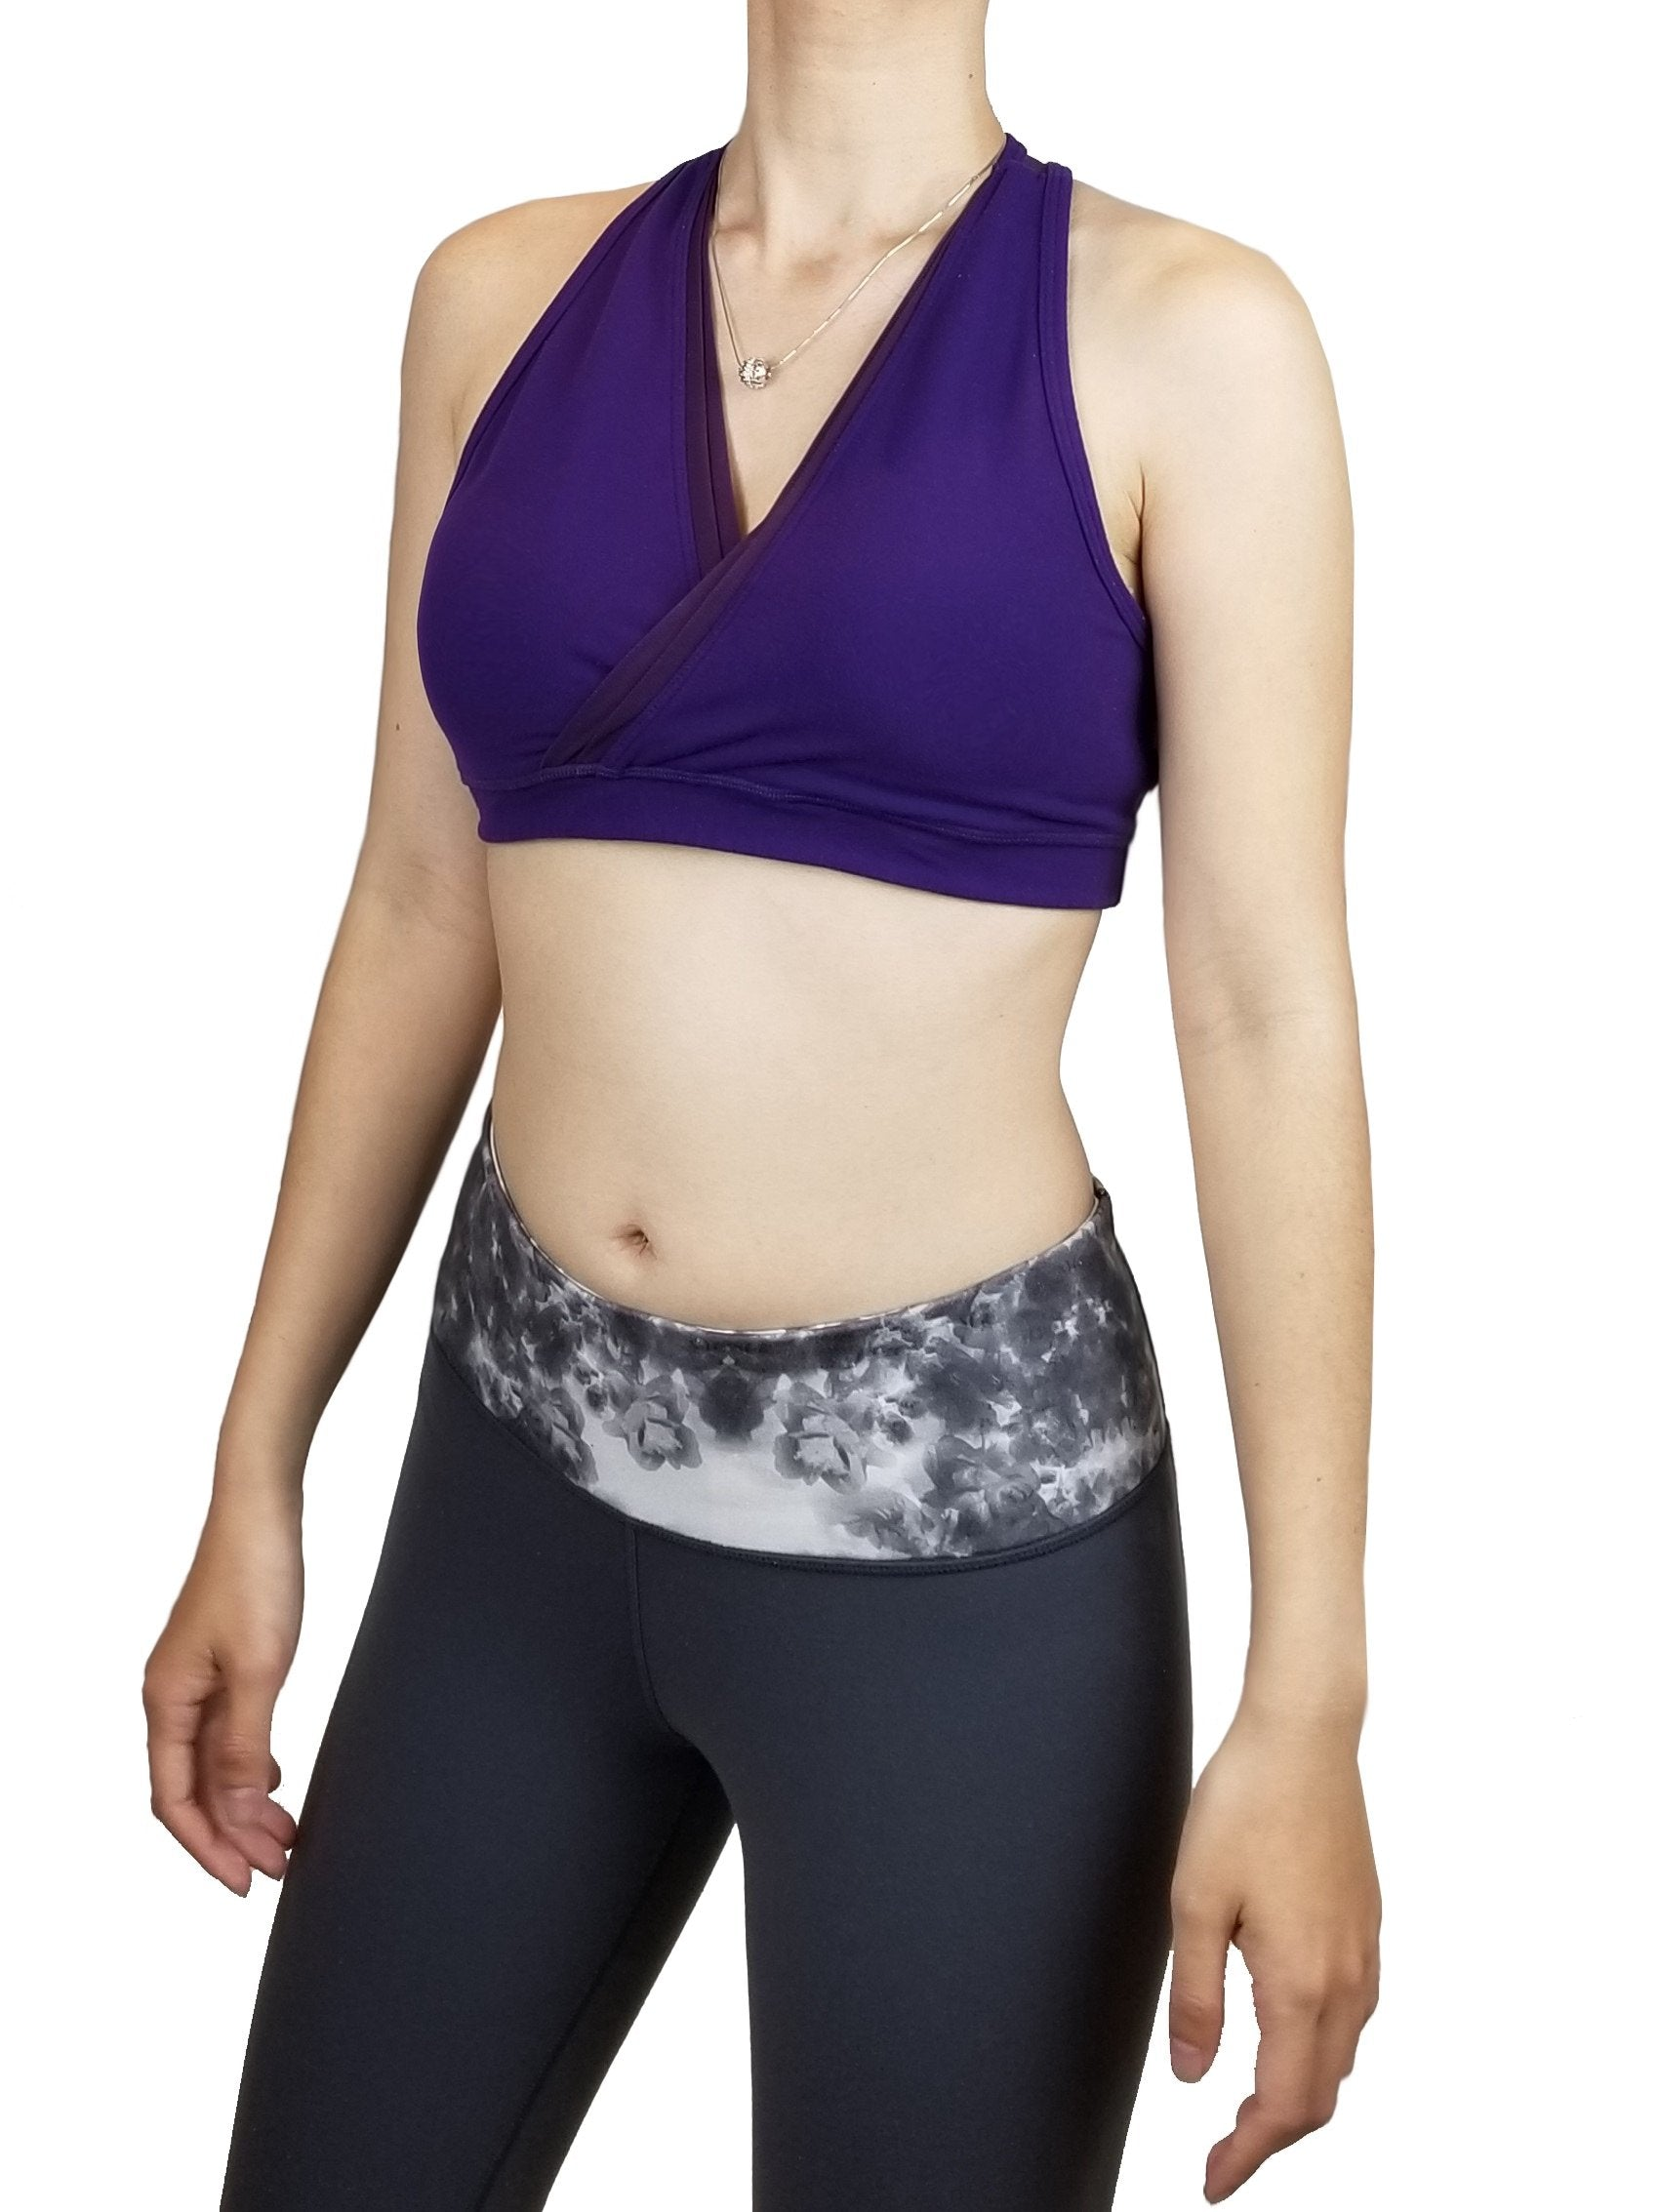 Lululemon V-Neck Athletic Bra, This sweat-wicking V-neck bra gives you the coverage and support you need for yoga, running, or the gym—without restricting your movement or breath. Lululemon size 6. https://info.lululemon.com/help/size-chart, Purple, 77% Nylon, 23% Lycra, active wear, women's workout clothes, sports bras, athletic bras, women's active wear